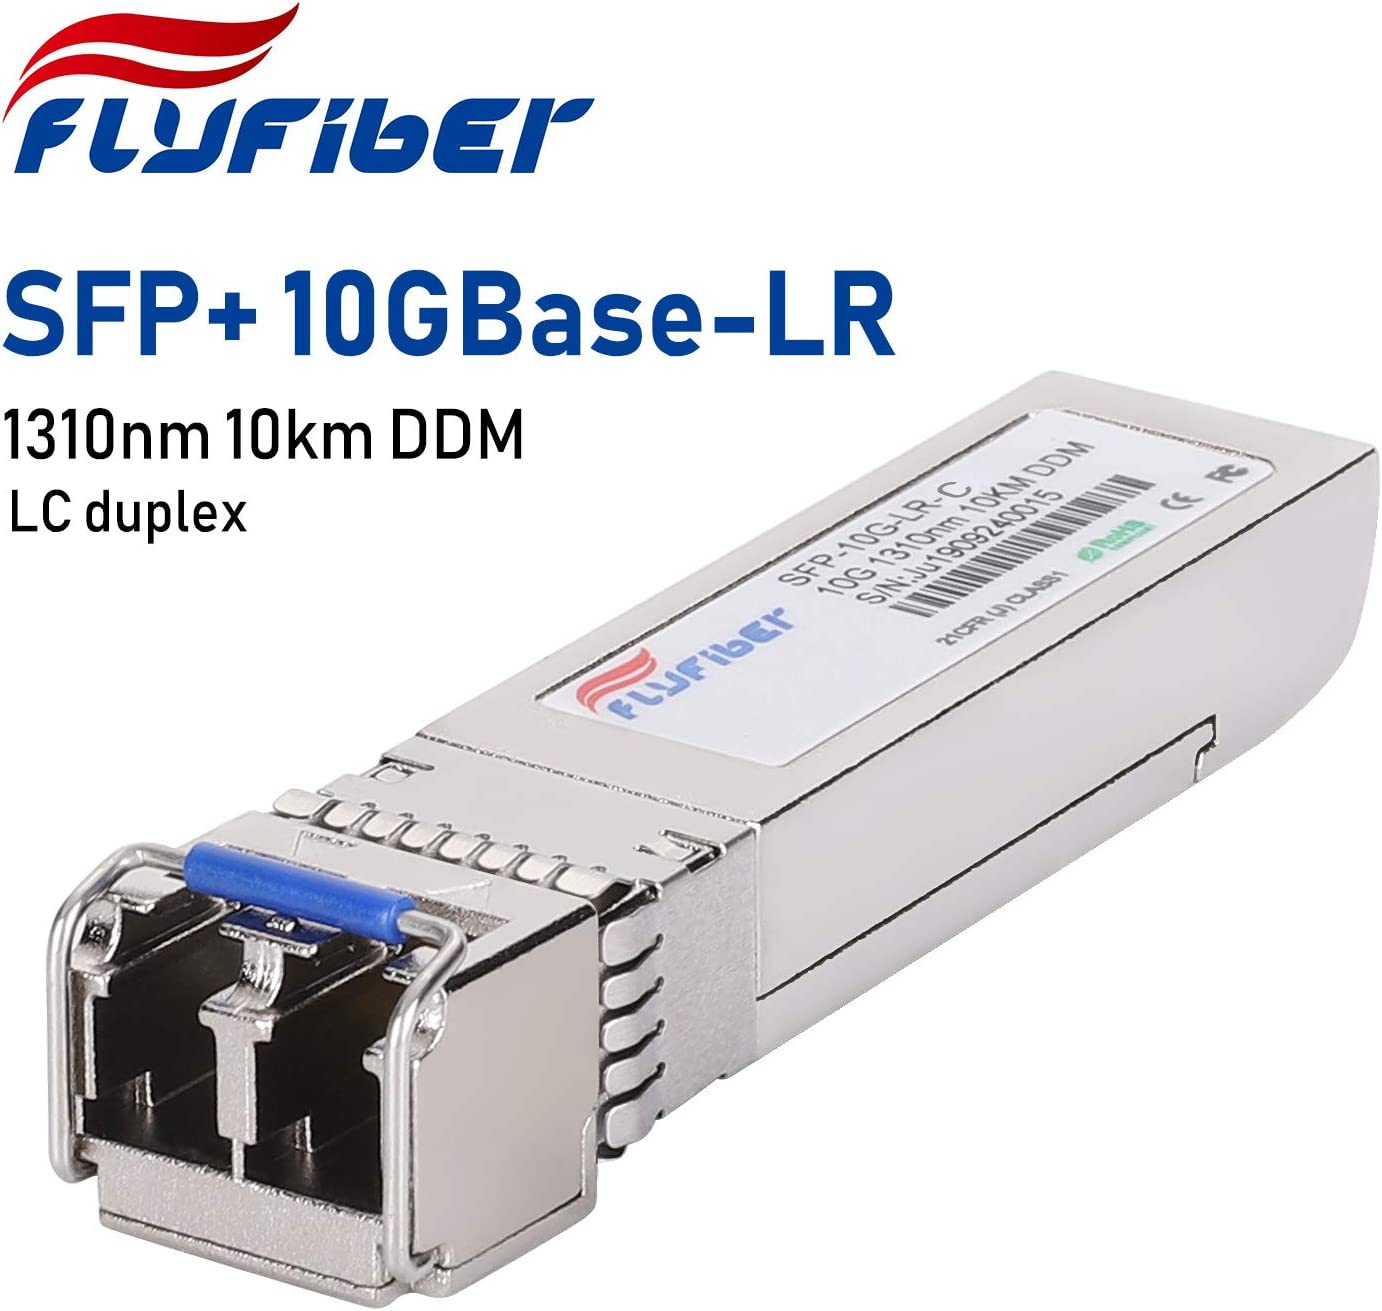 10GBASE-LR Module for HP J9151A 1310nm, DDM, 10km LC Single-Mode Transceiver 10 Gigabit SFP